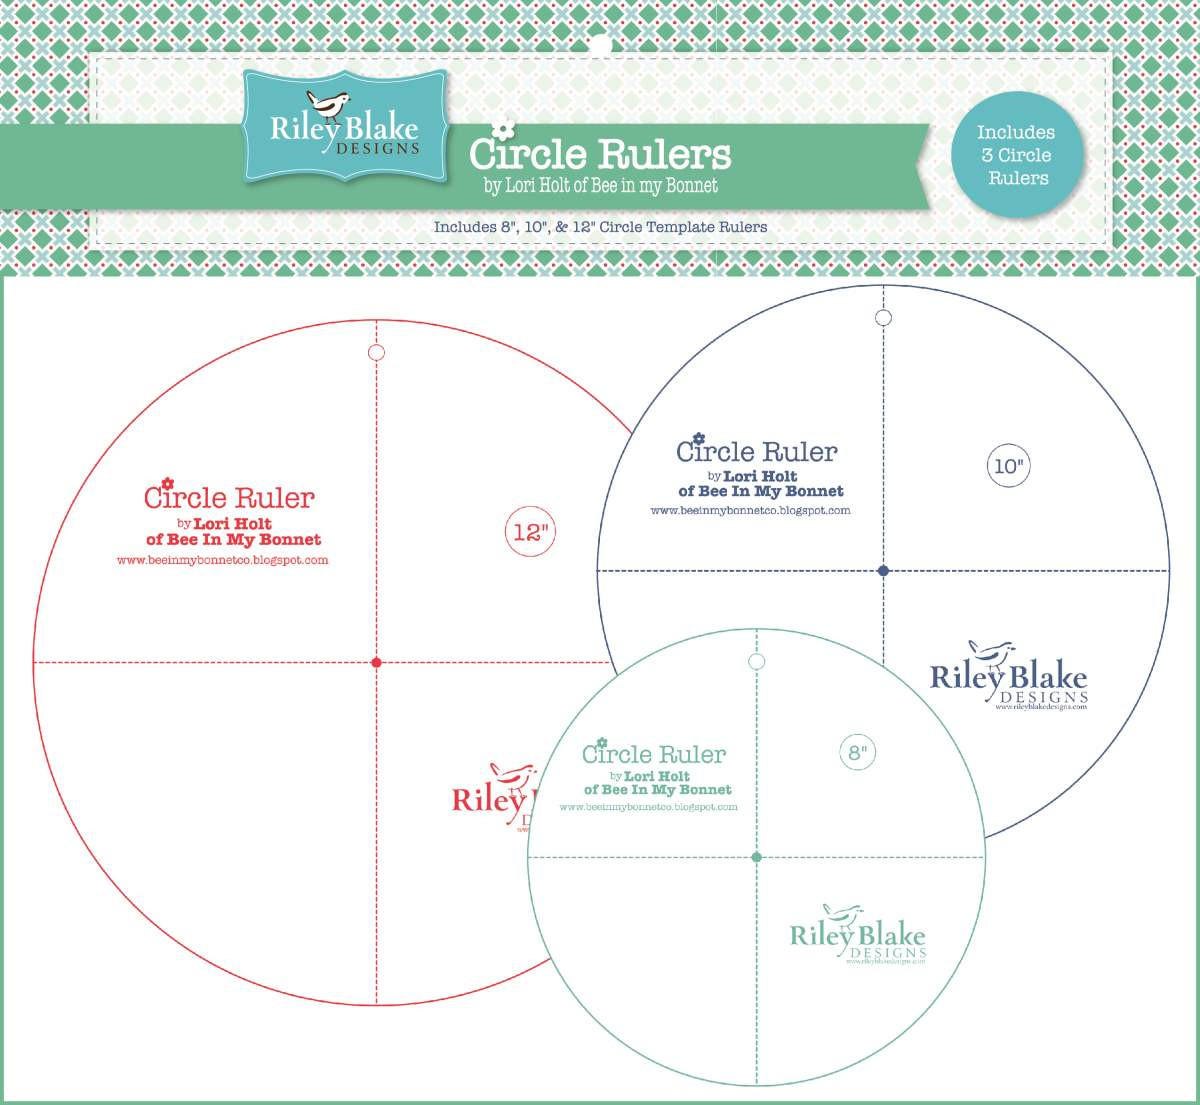 Lori Holt Circle Ruler Set